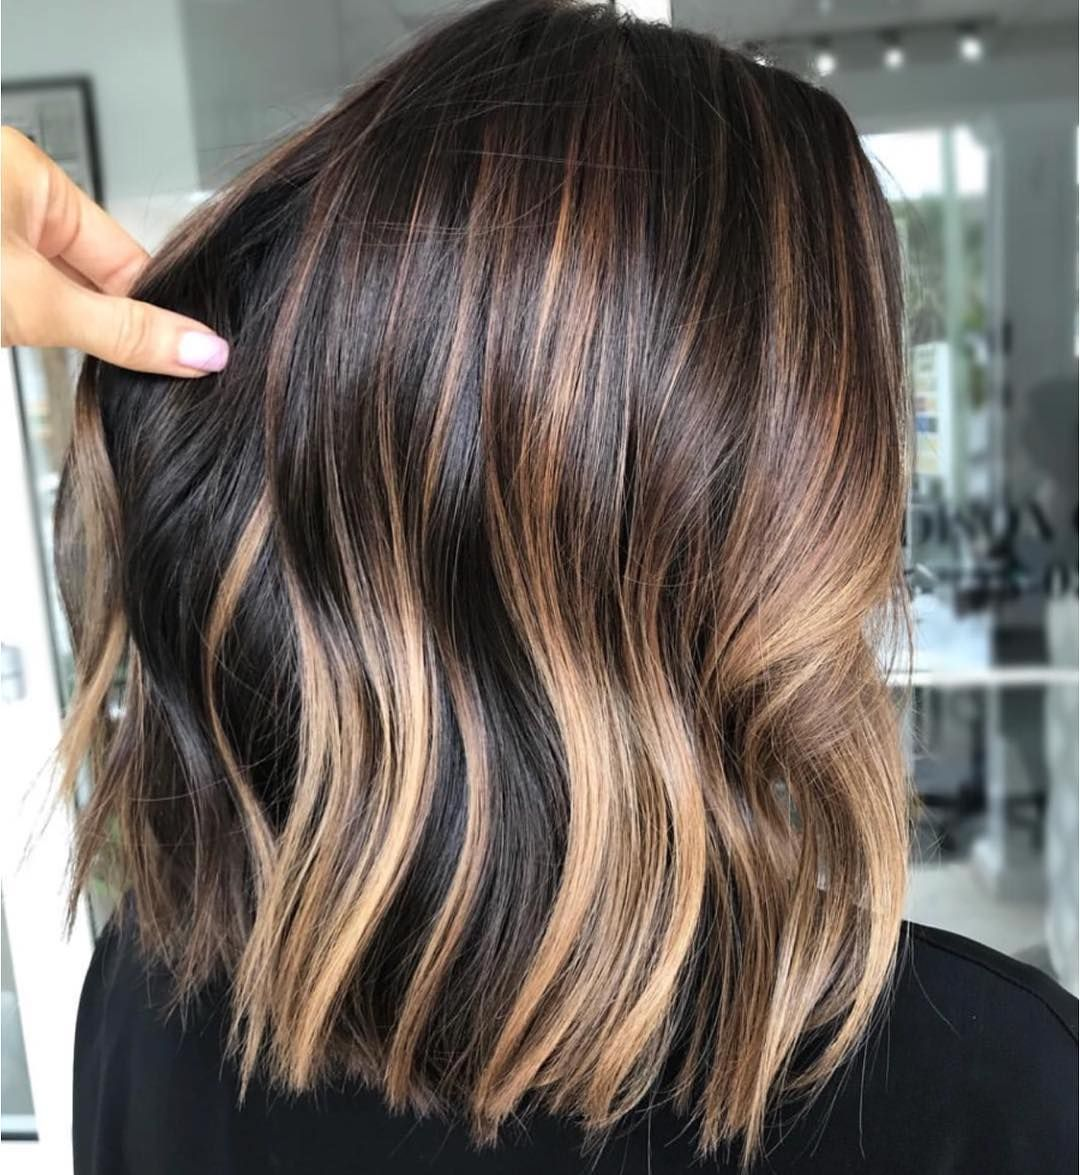 Hairstyles For Women Fall 2020 Hairstyles Pictures Hair Styles Long Hair Styles Short Hair Balayage